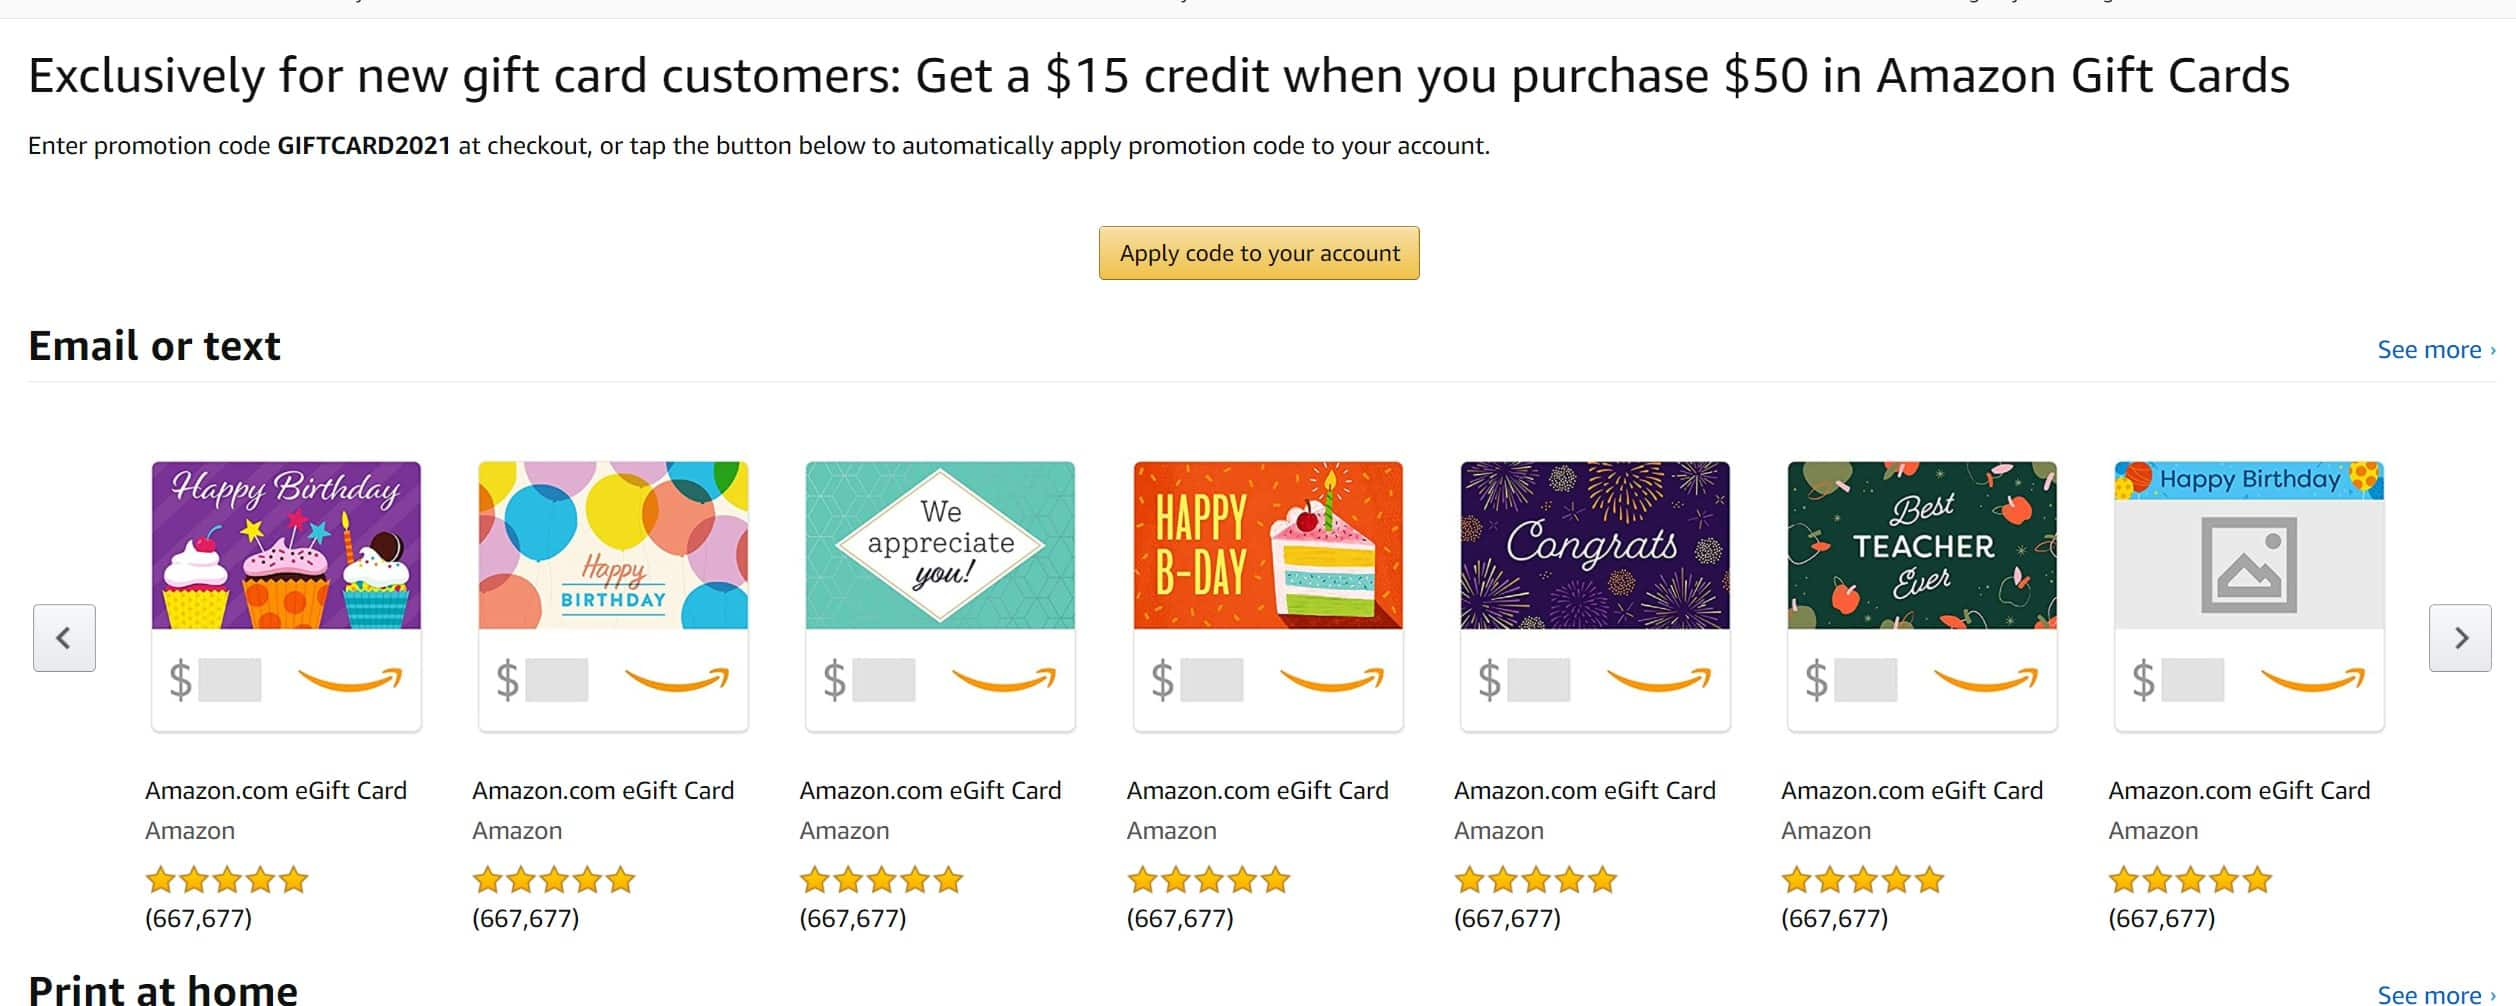 Get a $15 credit when you purchase $50 in Amazon Gift Cards YMMV